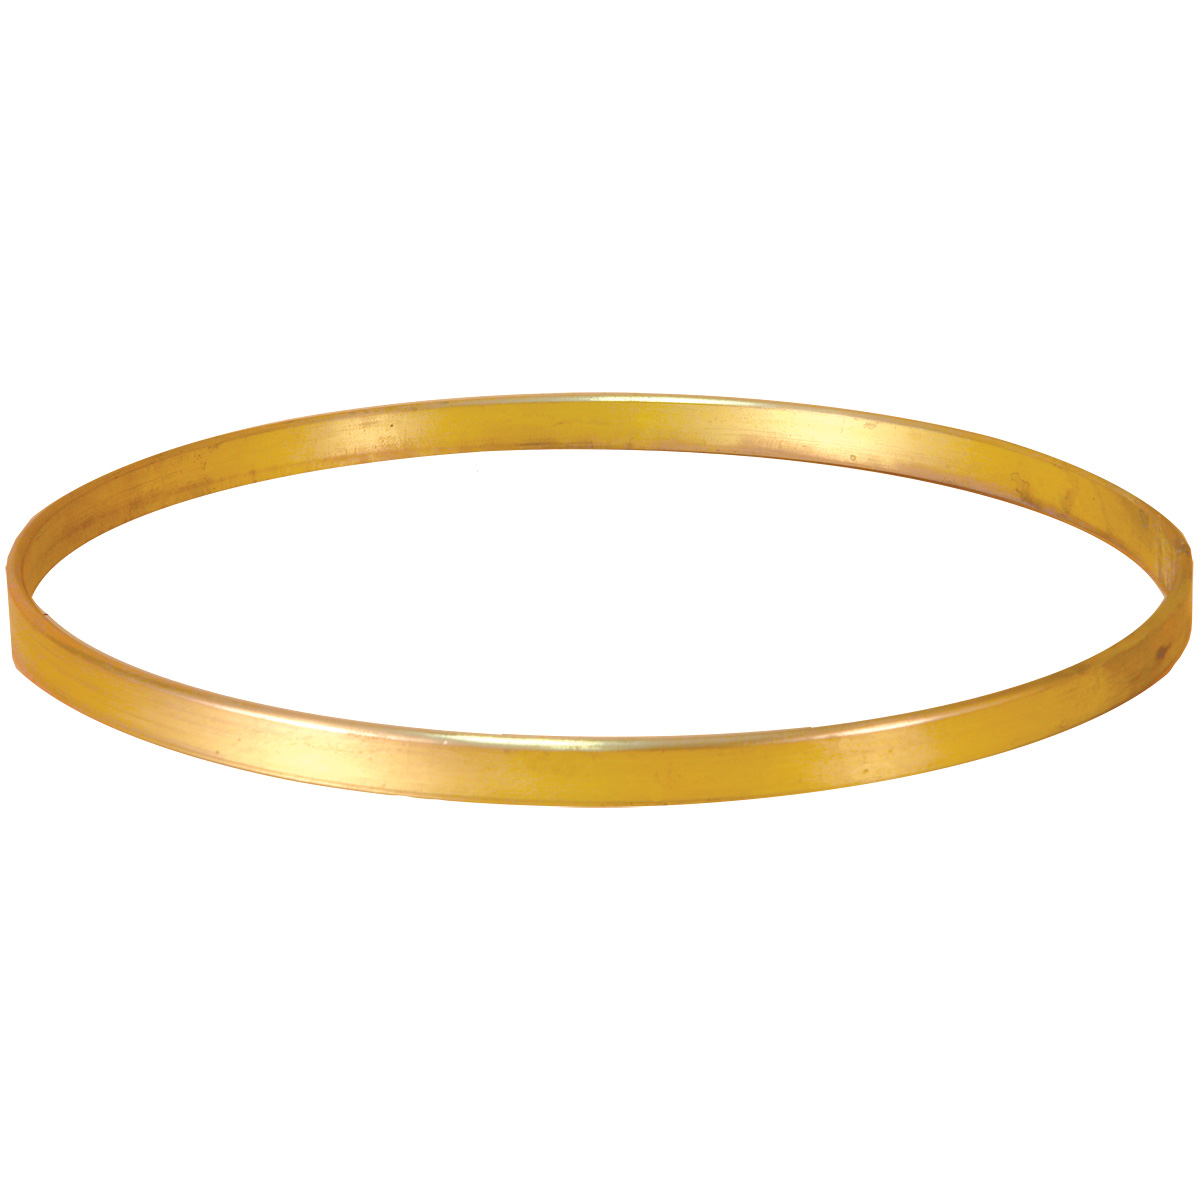 Flat Bar Rolled Brass Tone Ring